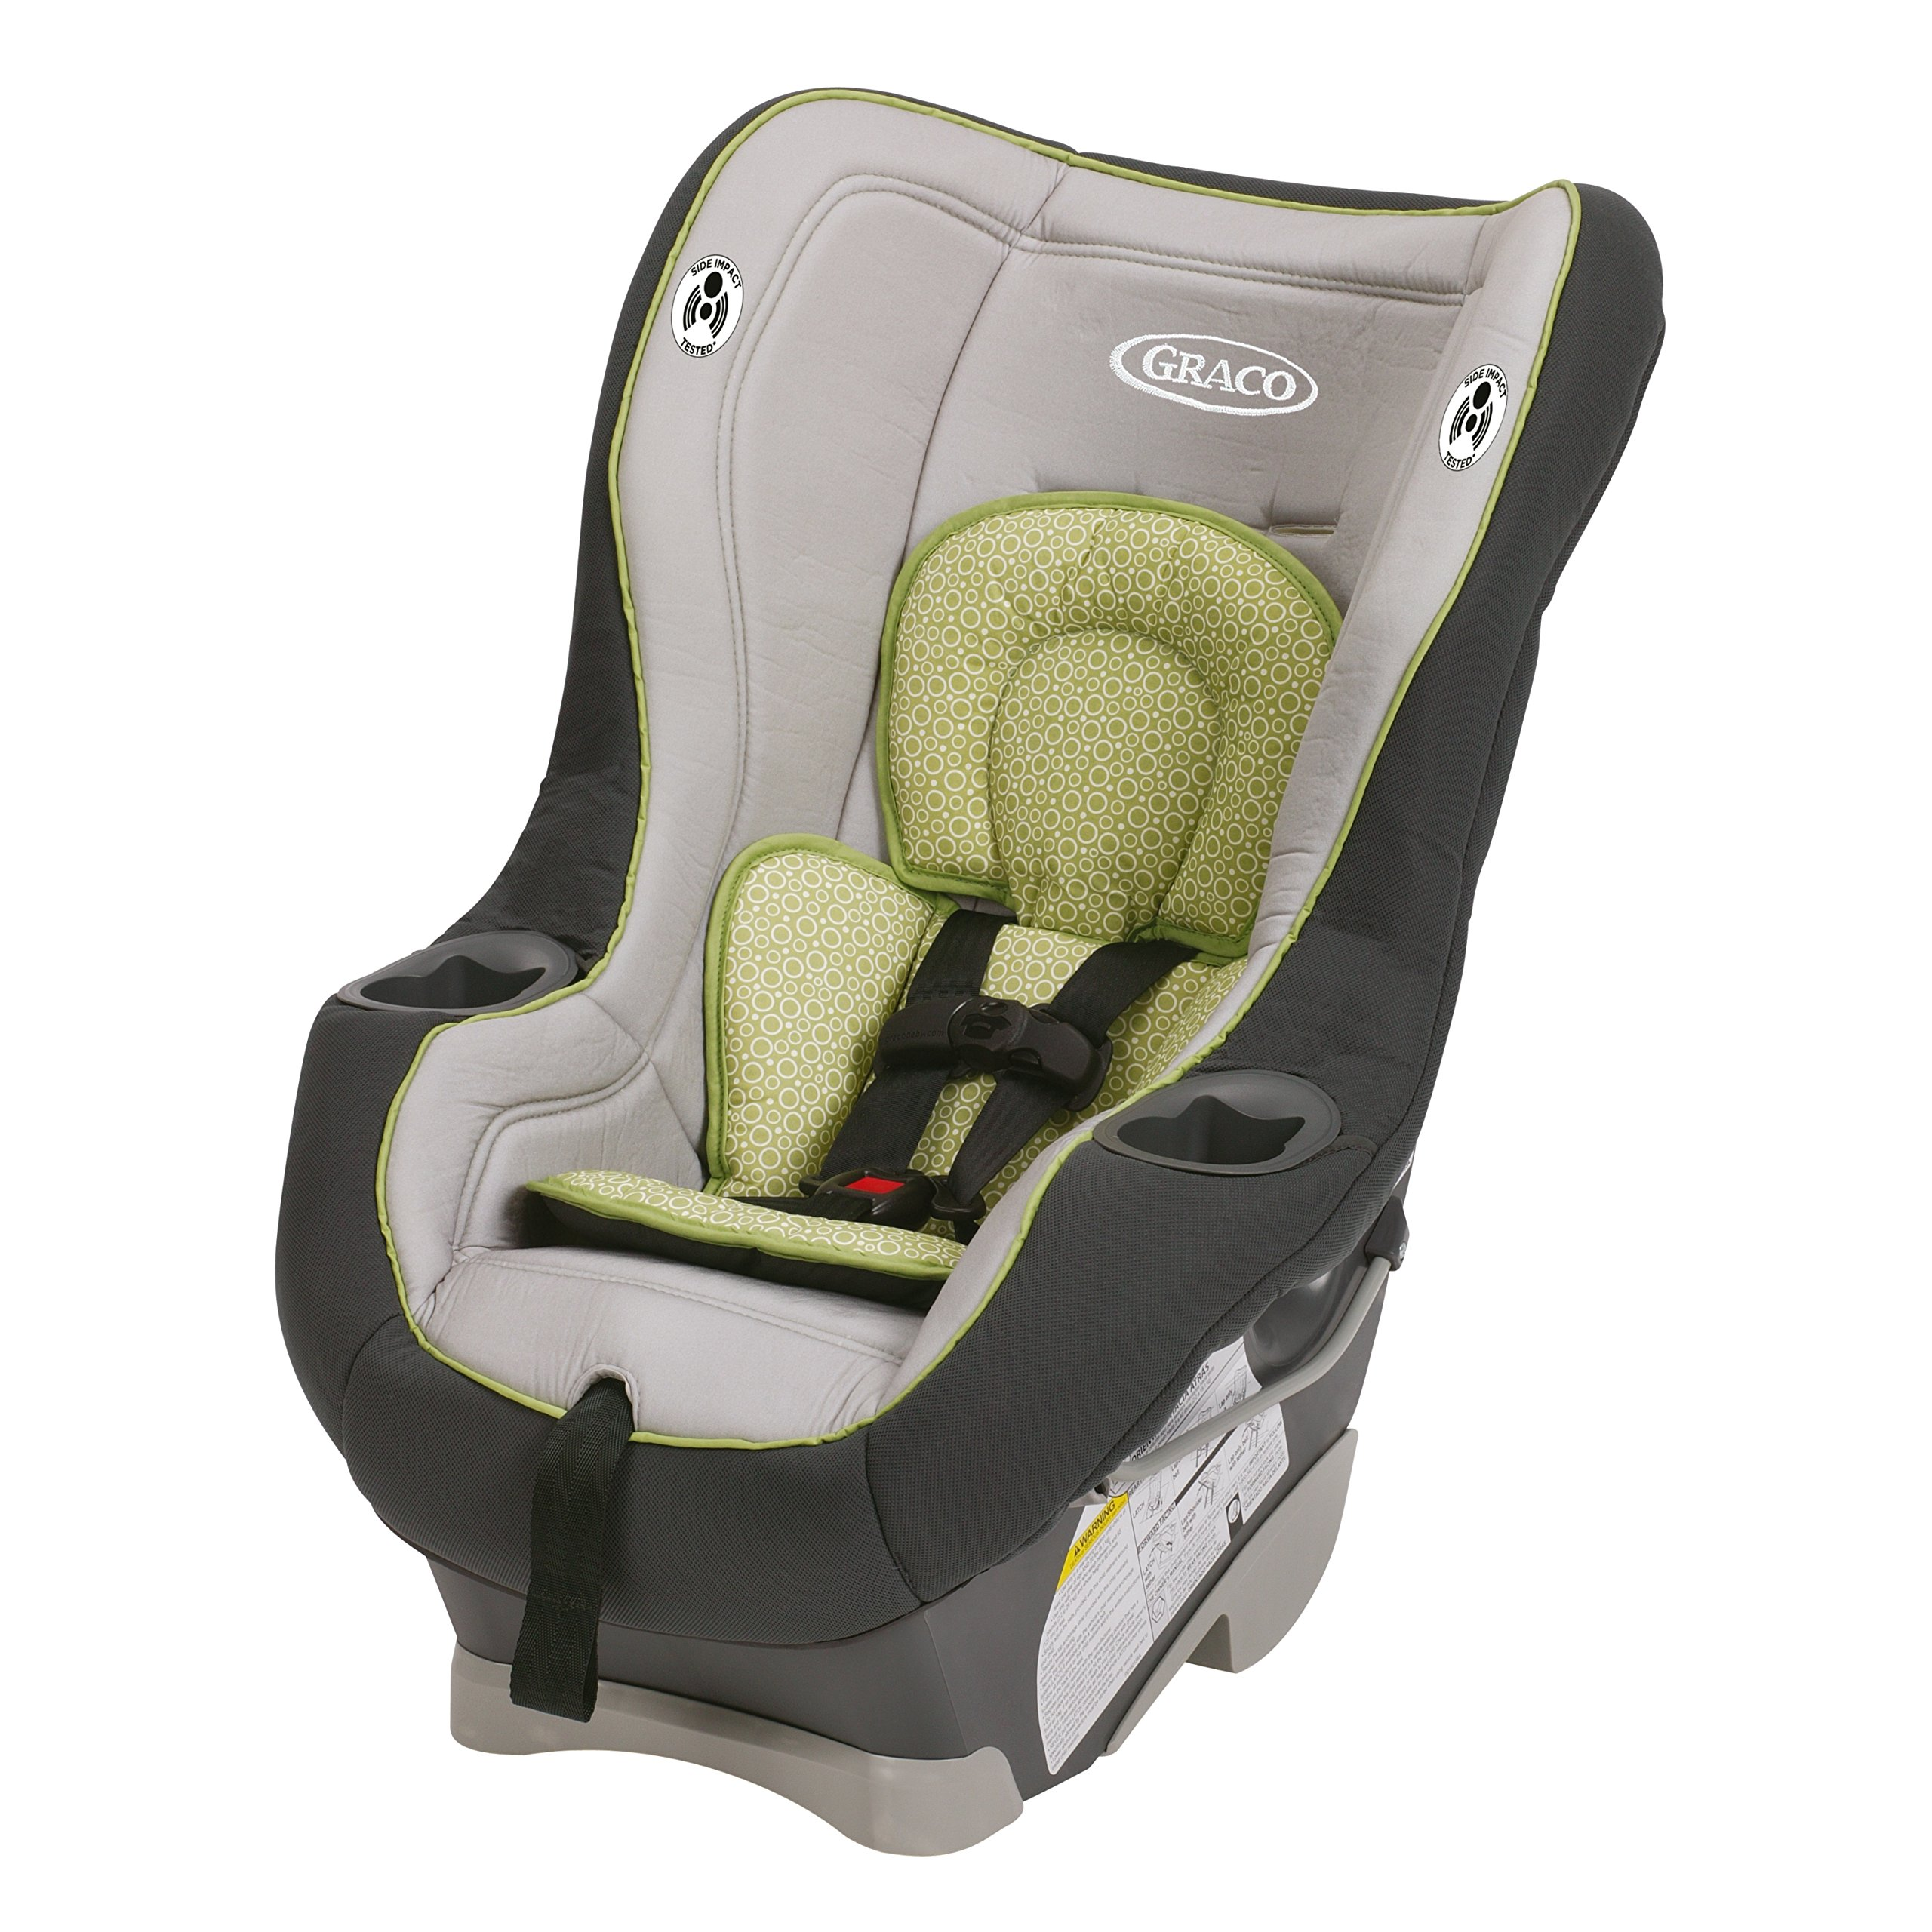 Amazon.com : Graco My Ride 65 Convertible Car Seat, Sully, One Size ...